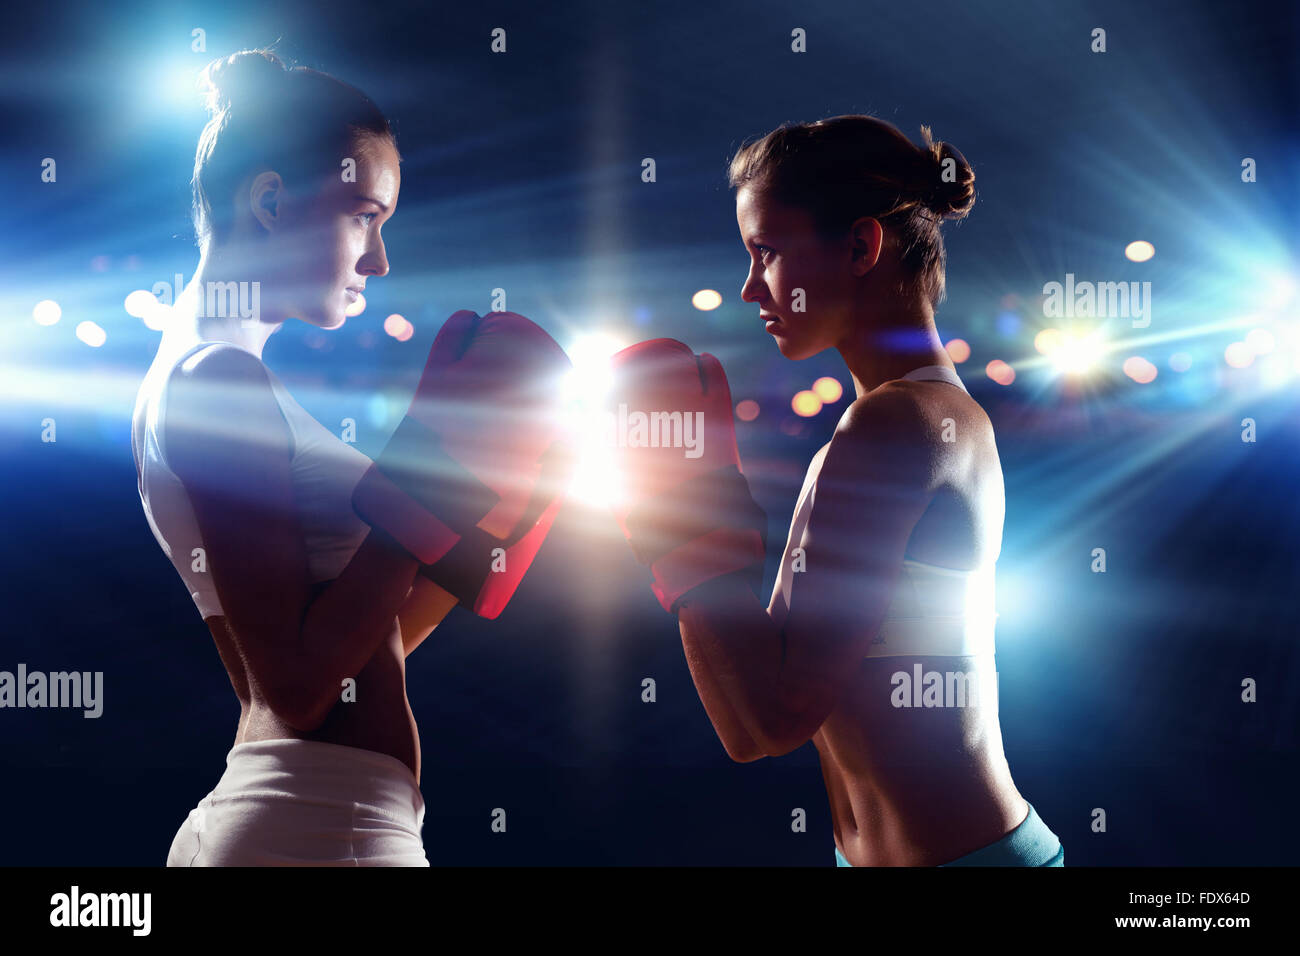 4c7d2b7e2 Two boxer women in gloves greet each other before fight Stock Photo ...